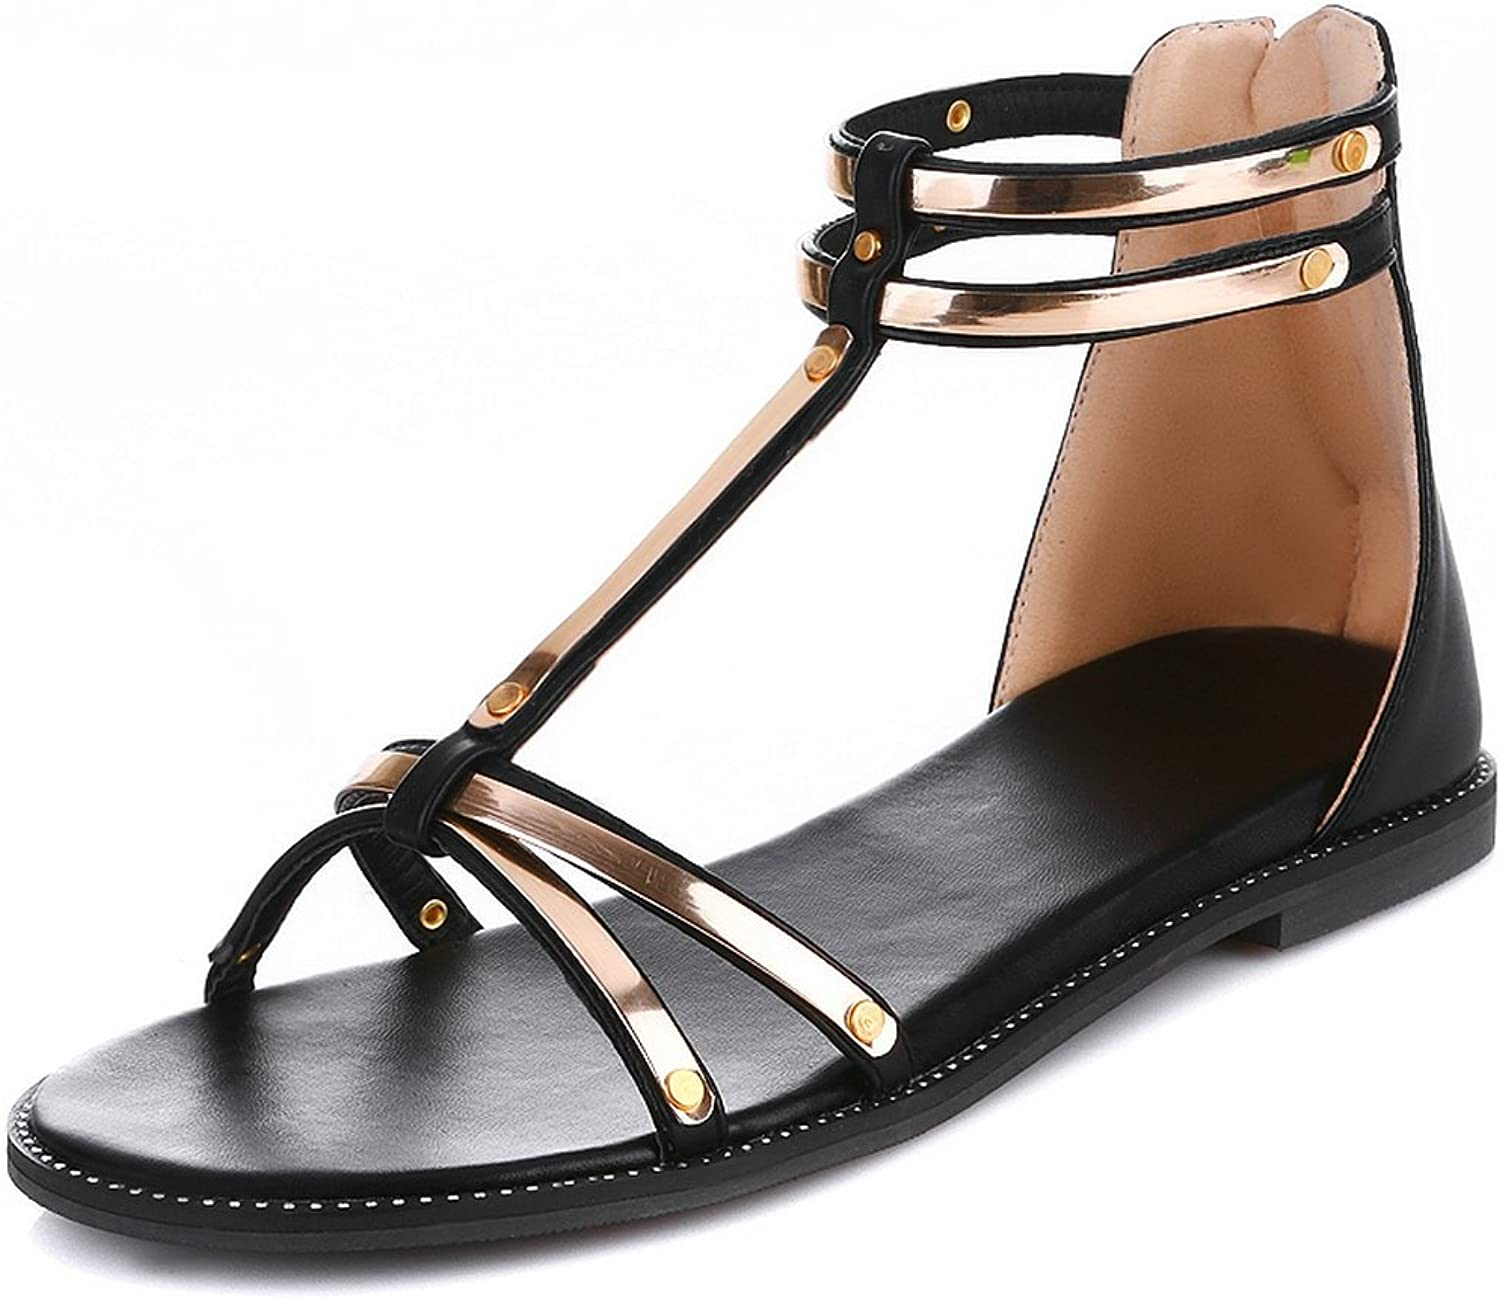 AIWEIYi Womens Summer T Strap Open Toe Ankle Strap shoes Casual Comfortable Gladiator Sandals gold